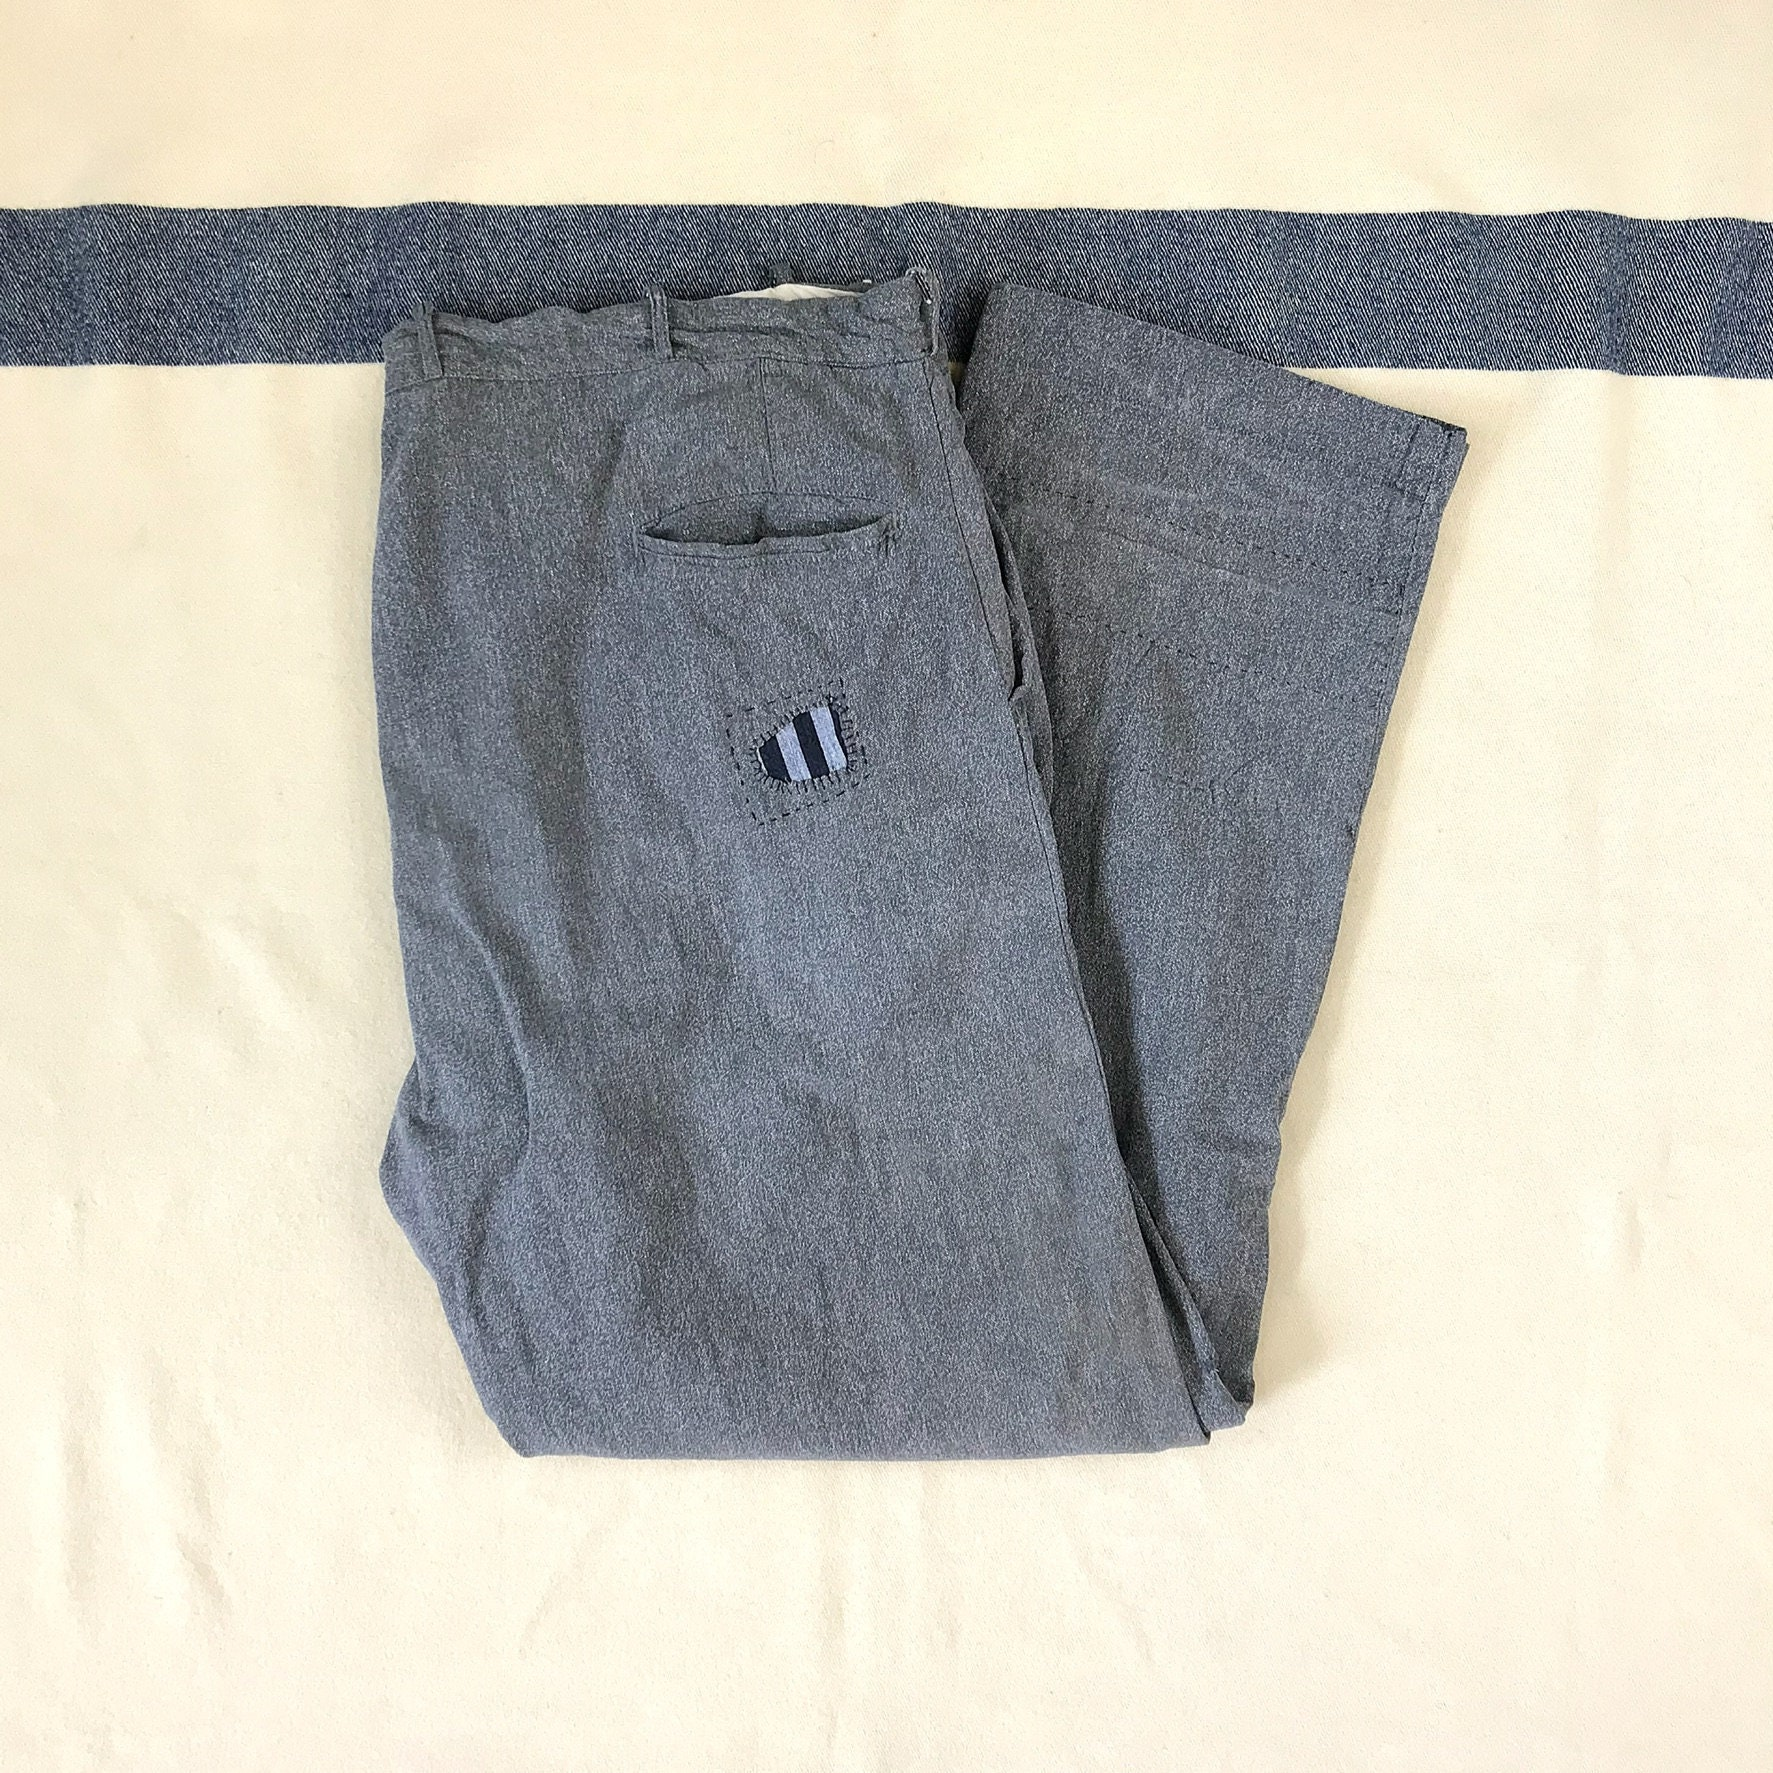 New 1930s Mens Fashion Ties Size 42x31 Vintage Mens 1930S 1940S Salt  Pepper Covert Cloth Cotton Twill Distressed Gray Work Pants With Visible Mending $0.00 AT vintagedancer.com